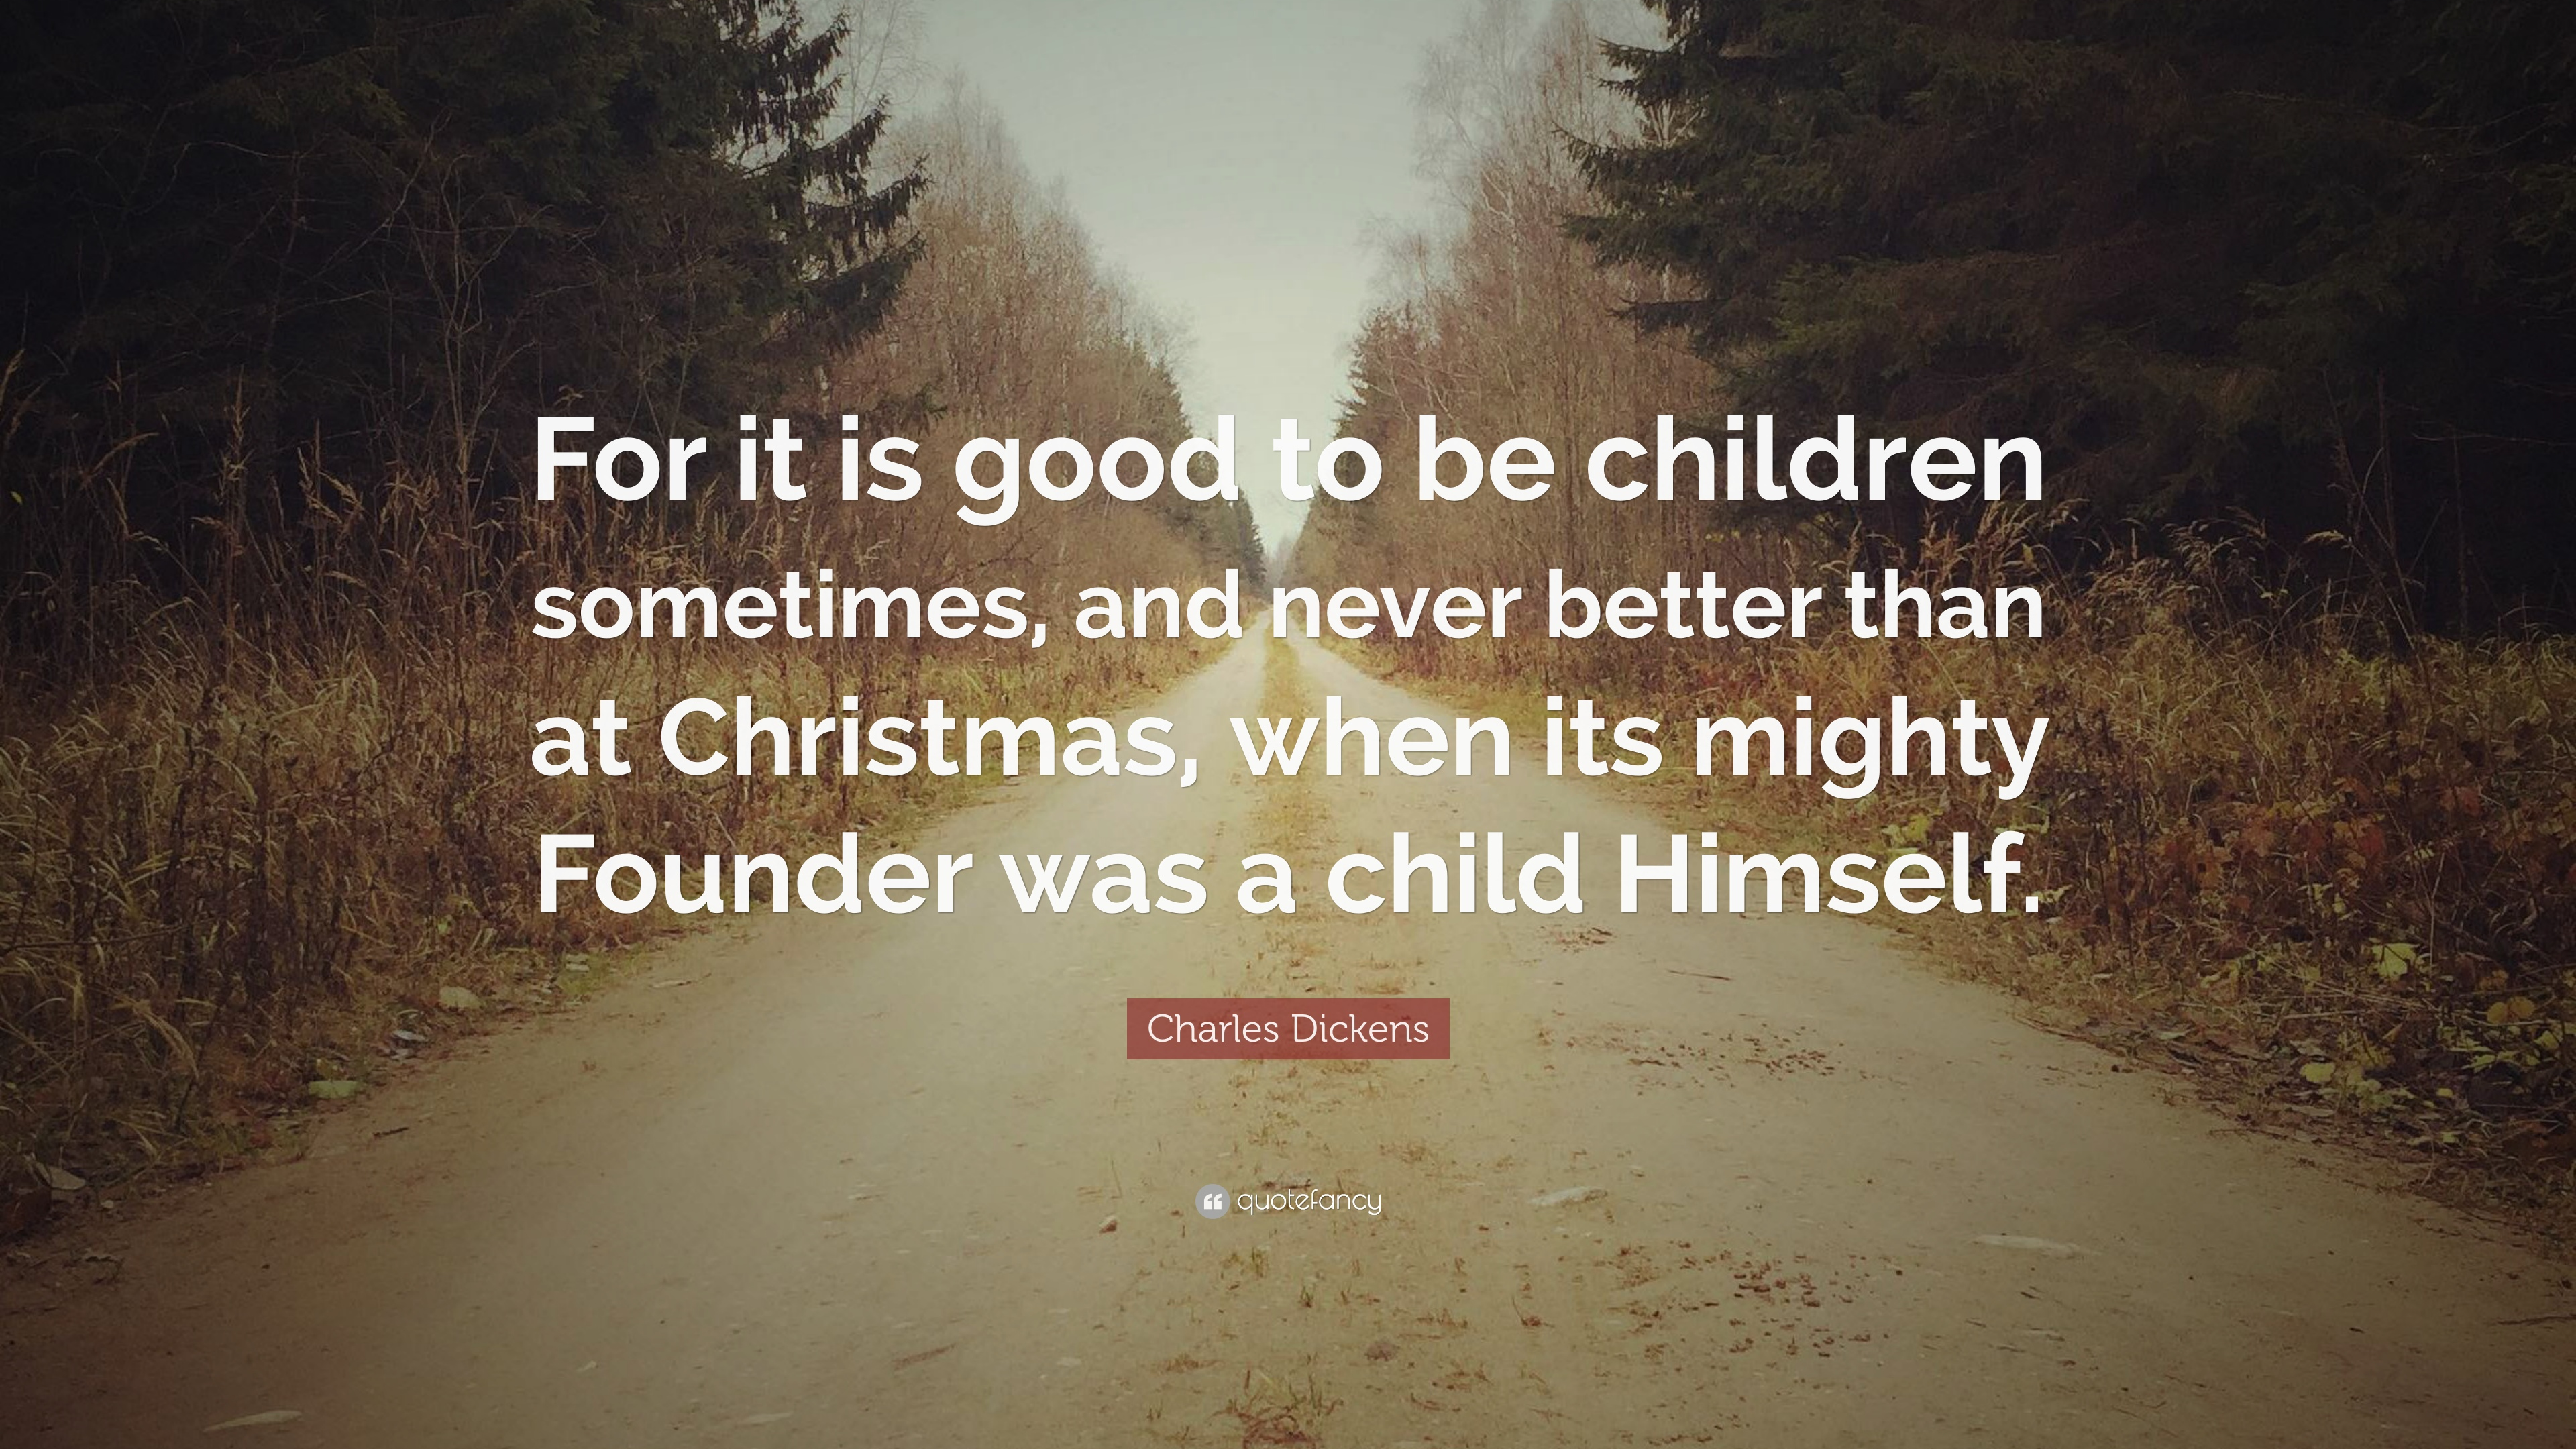 Charles Dickens Quote: U201cFor It Is Good To Be Children Sometimes, And Never